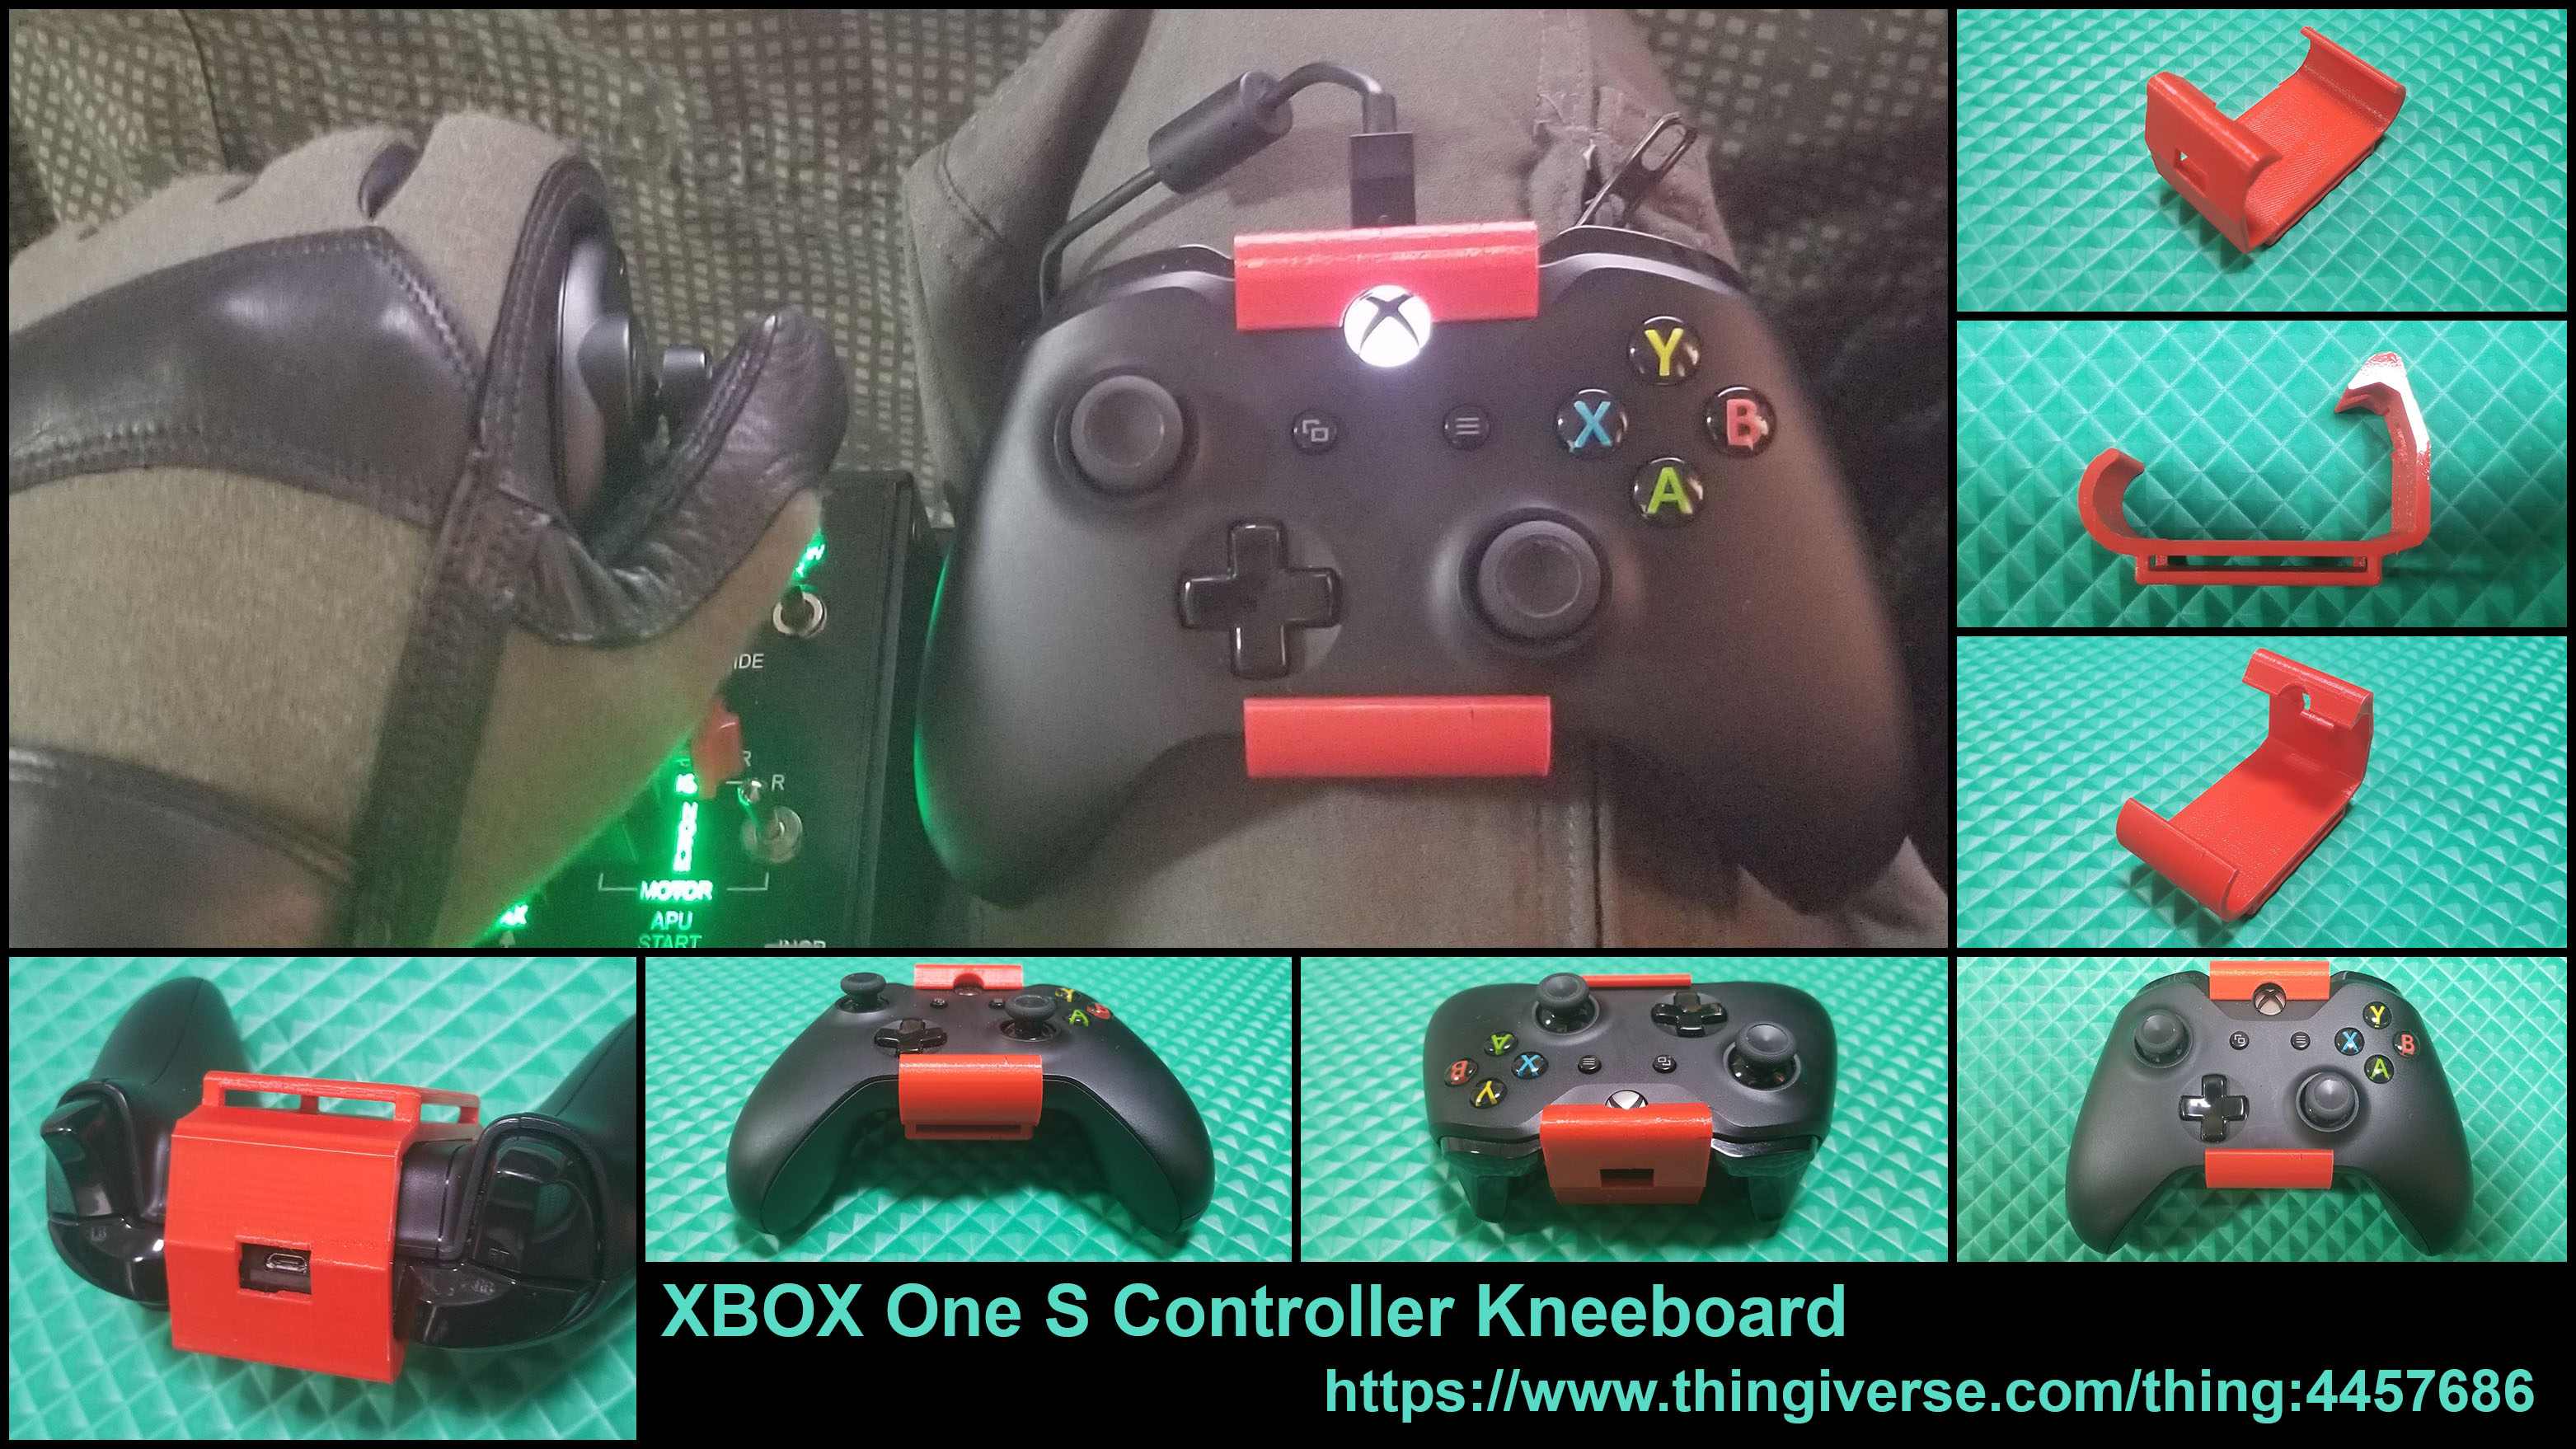 Xbox One S Controller Kneeboard